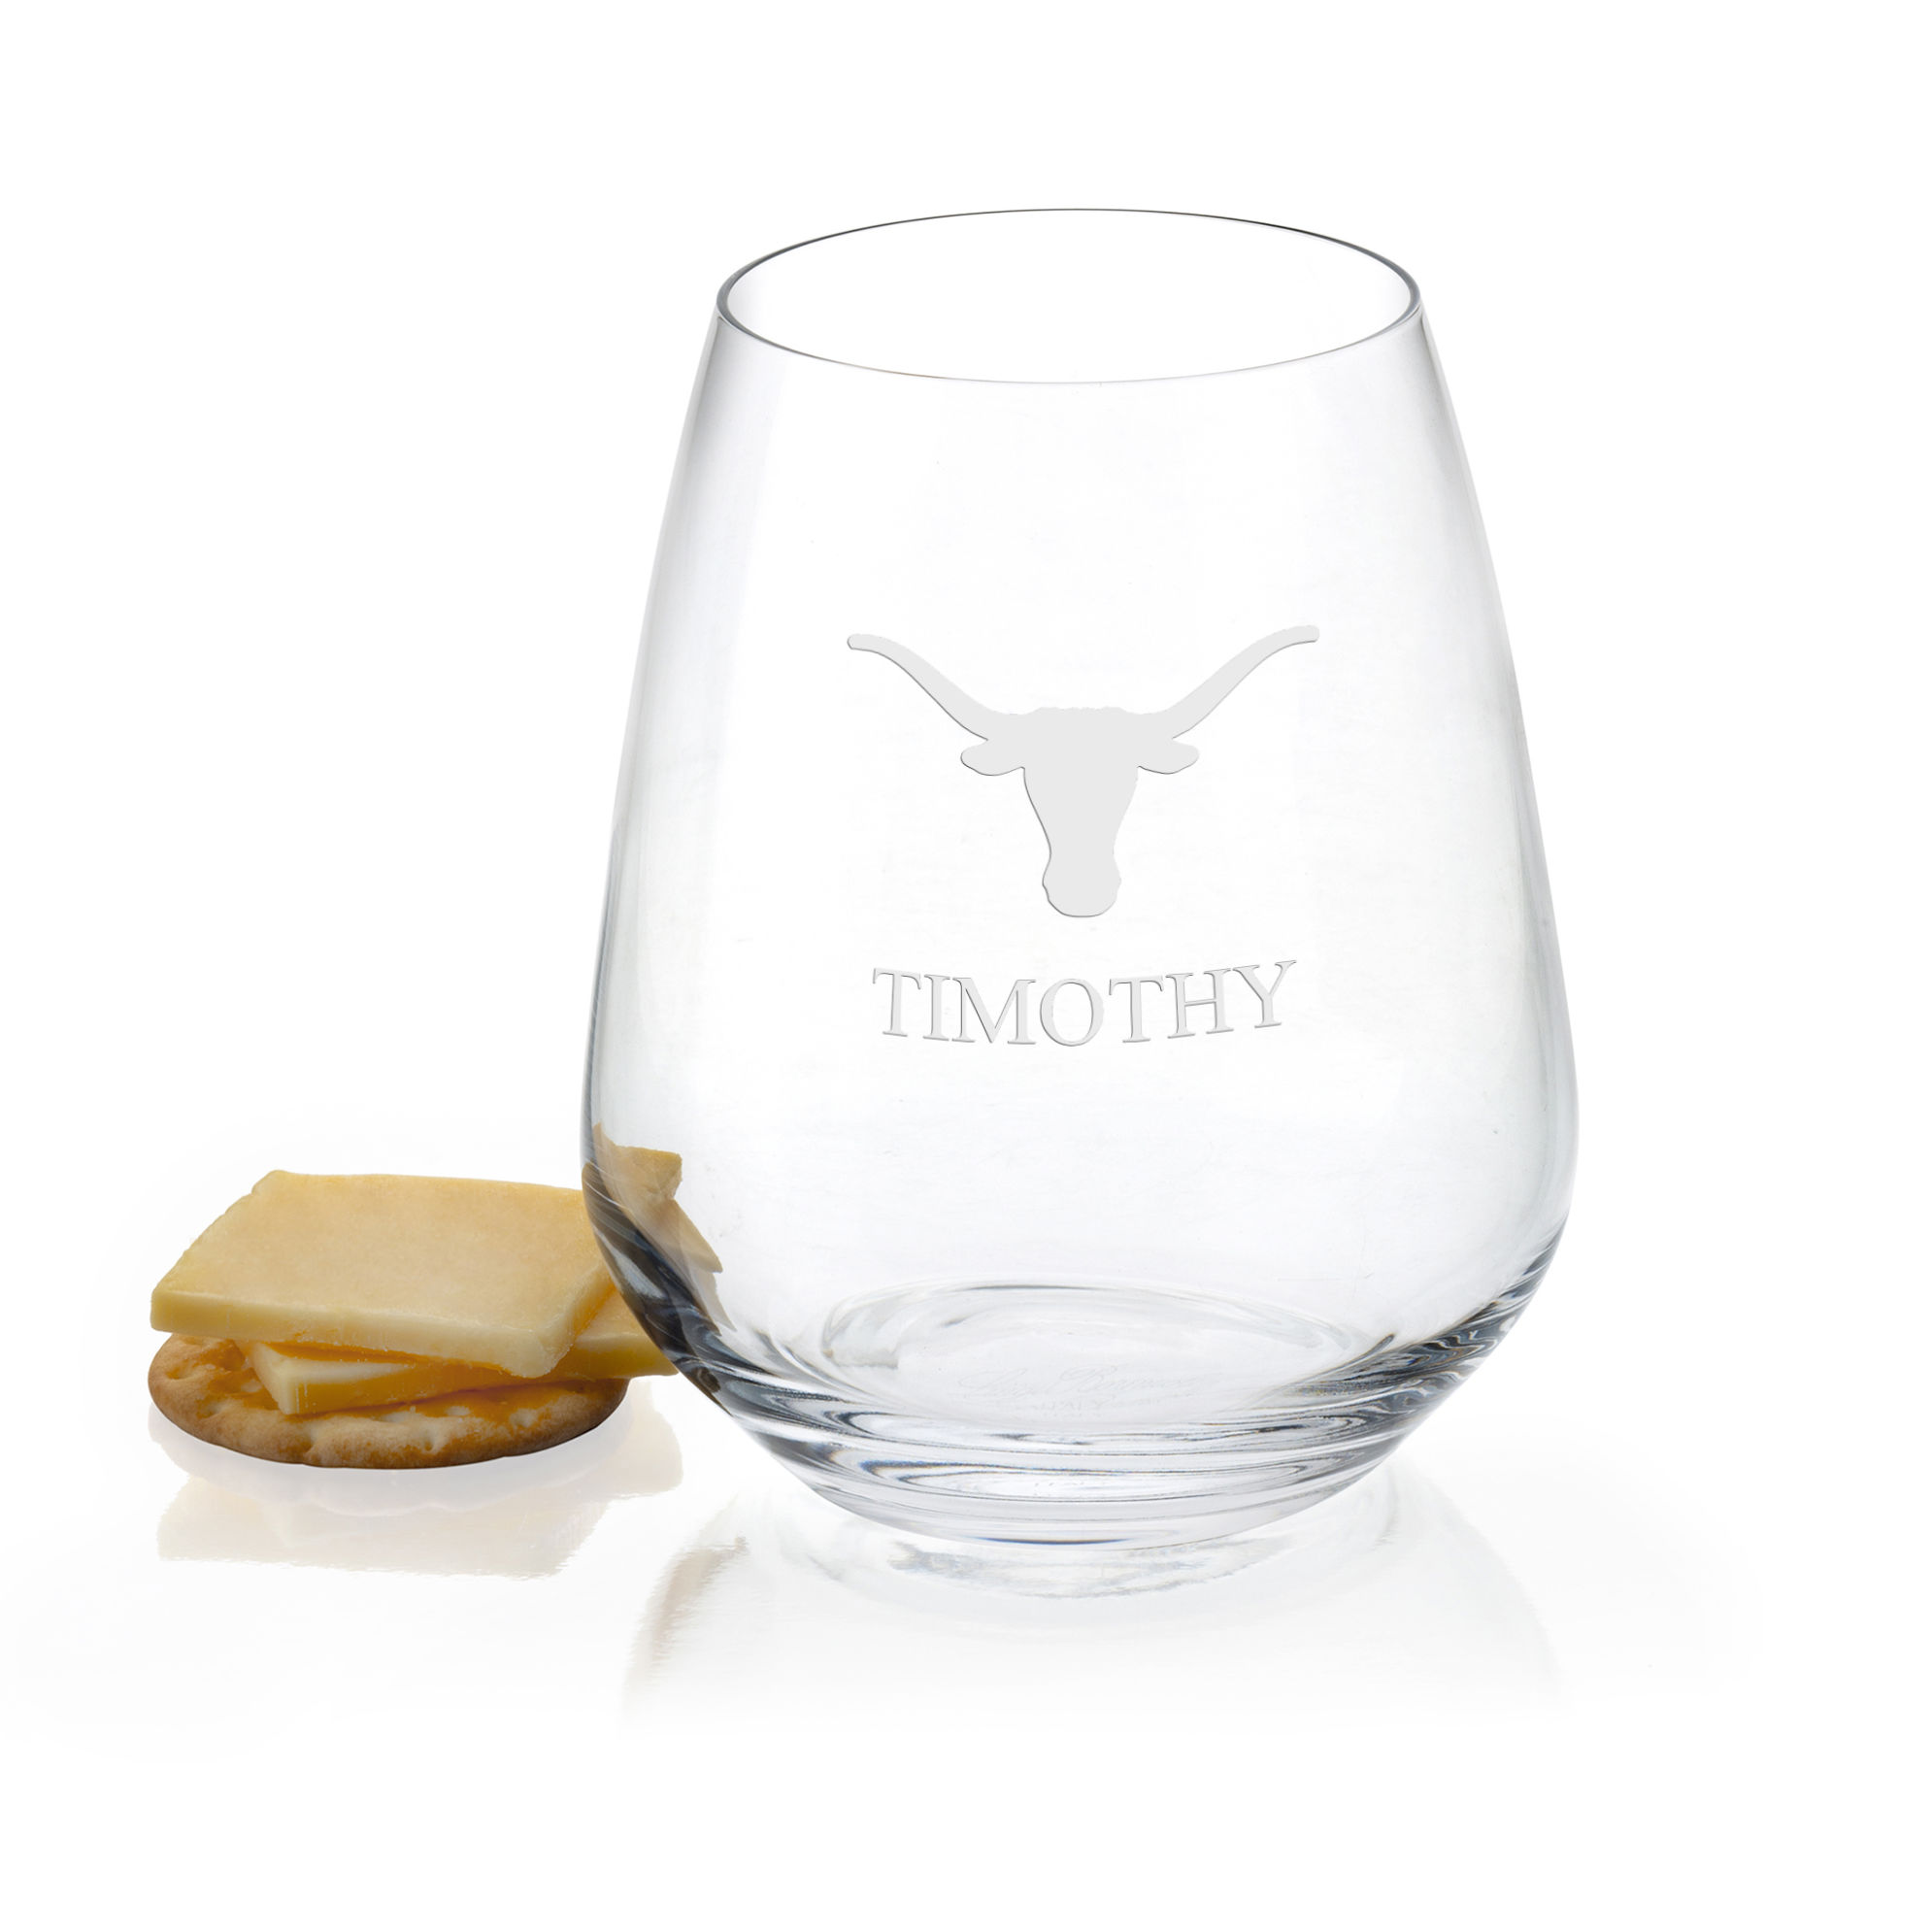 University of Texas Stemless Wine Glasses - Set of 4